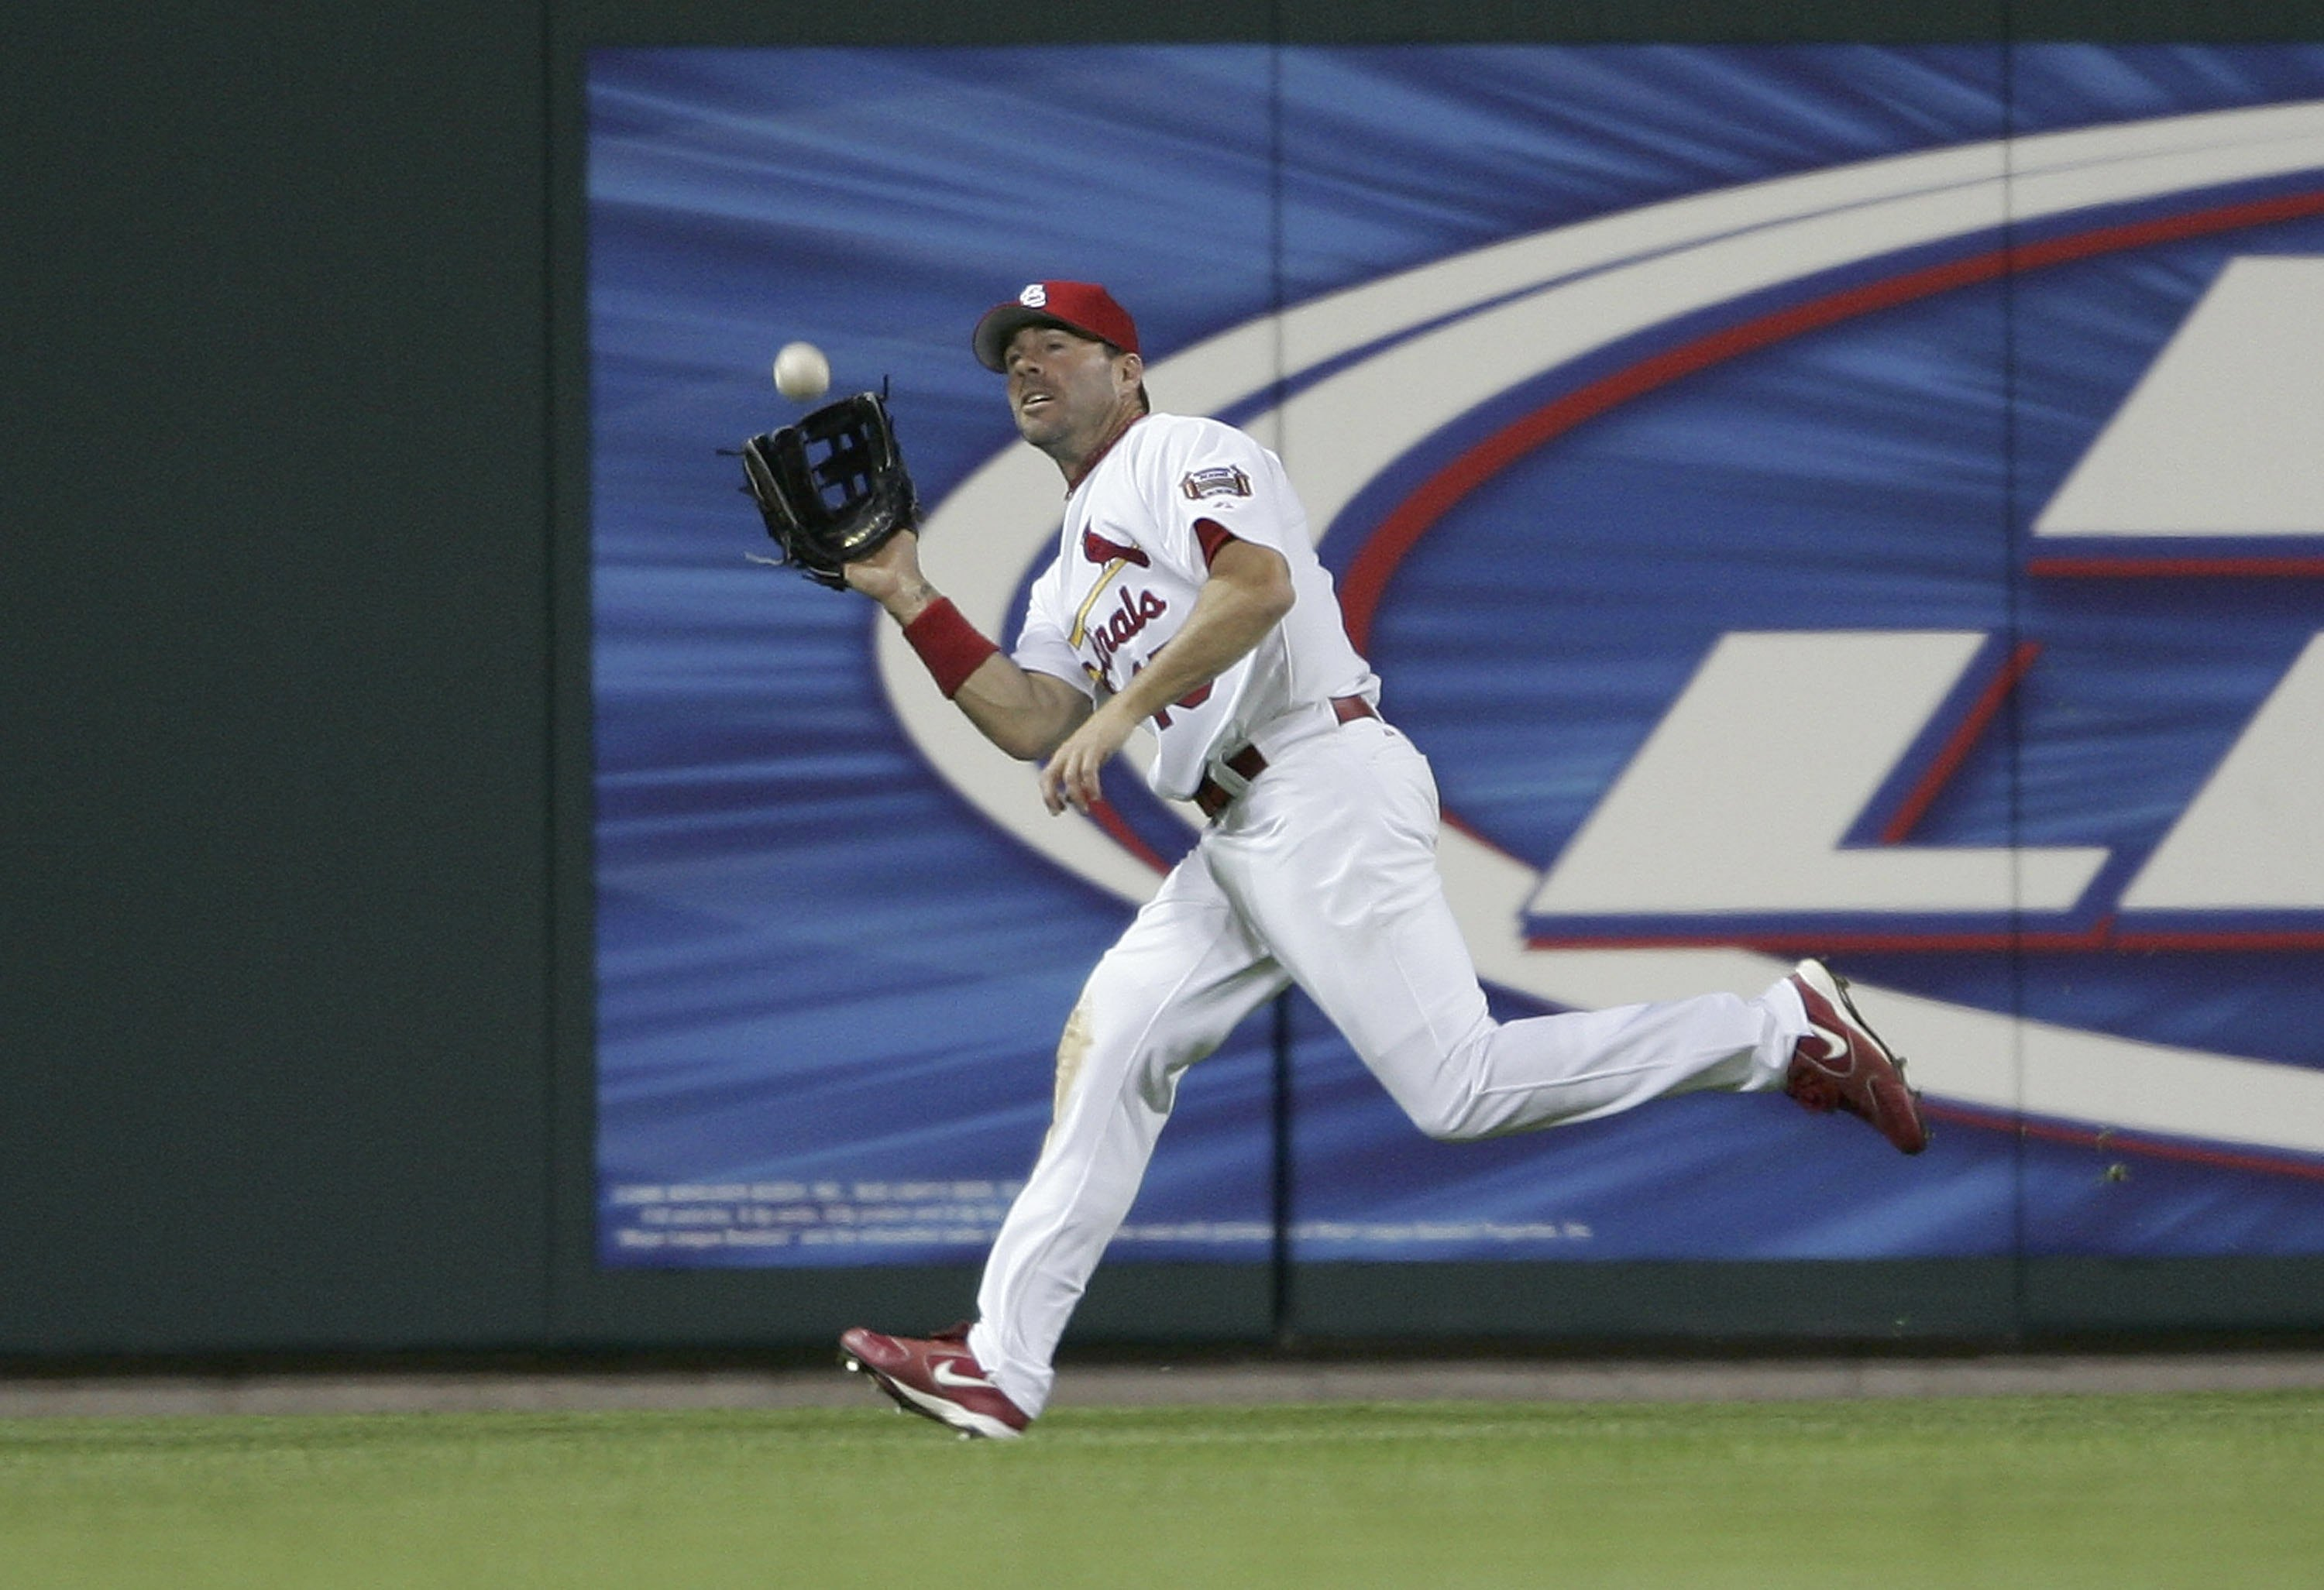 Jim Edmonds making one of his many catches while patrolling center field